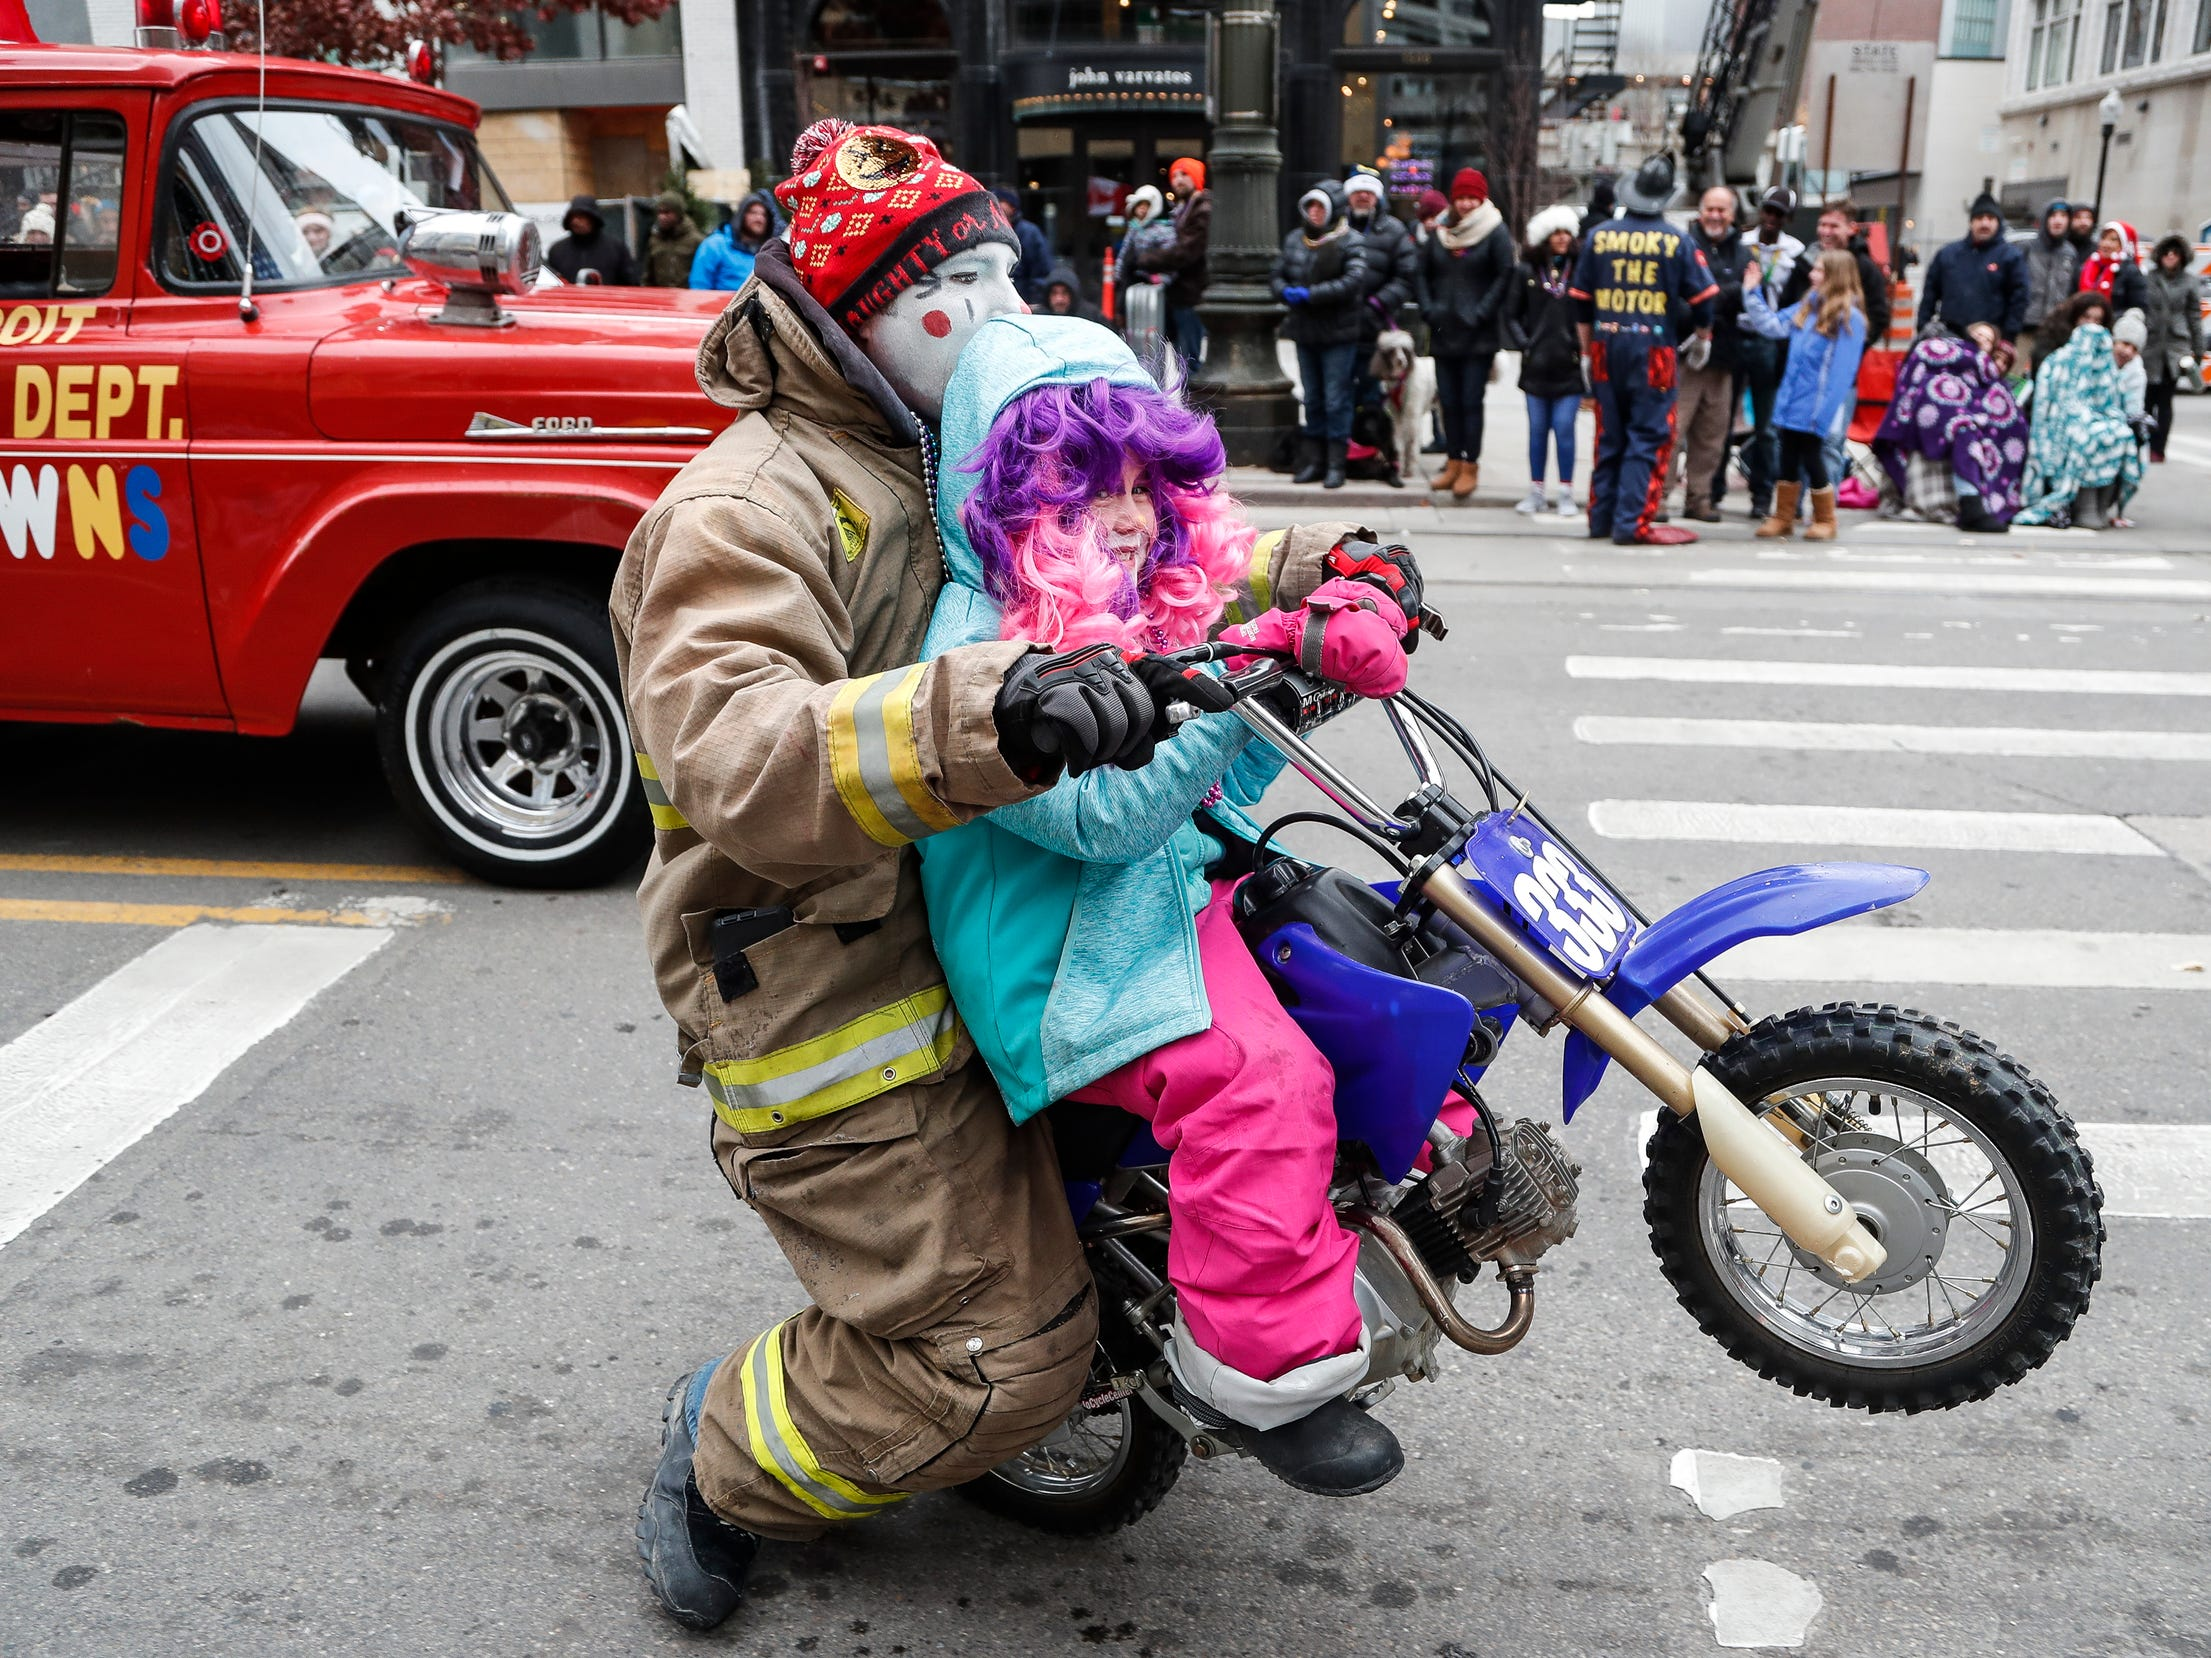 Detroit Fire Department clown Justin Parsons rides a motorcycle with Kinley Huff, 6, on Woodward Avenue during the 92nd America's Thanksgiving Day Parade in Detroit, Thursday, Nov. 22, 2018.